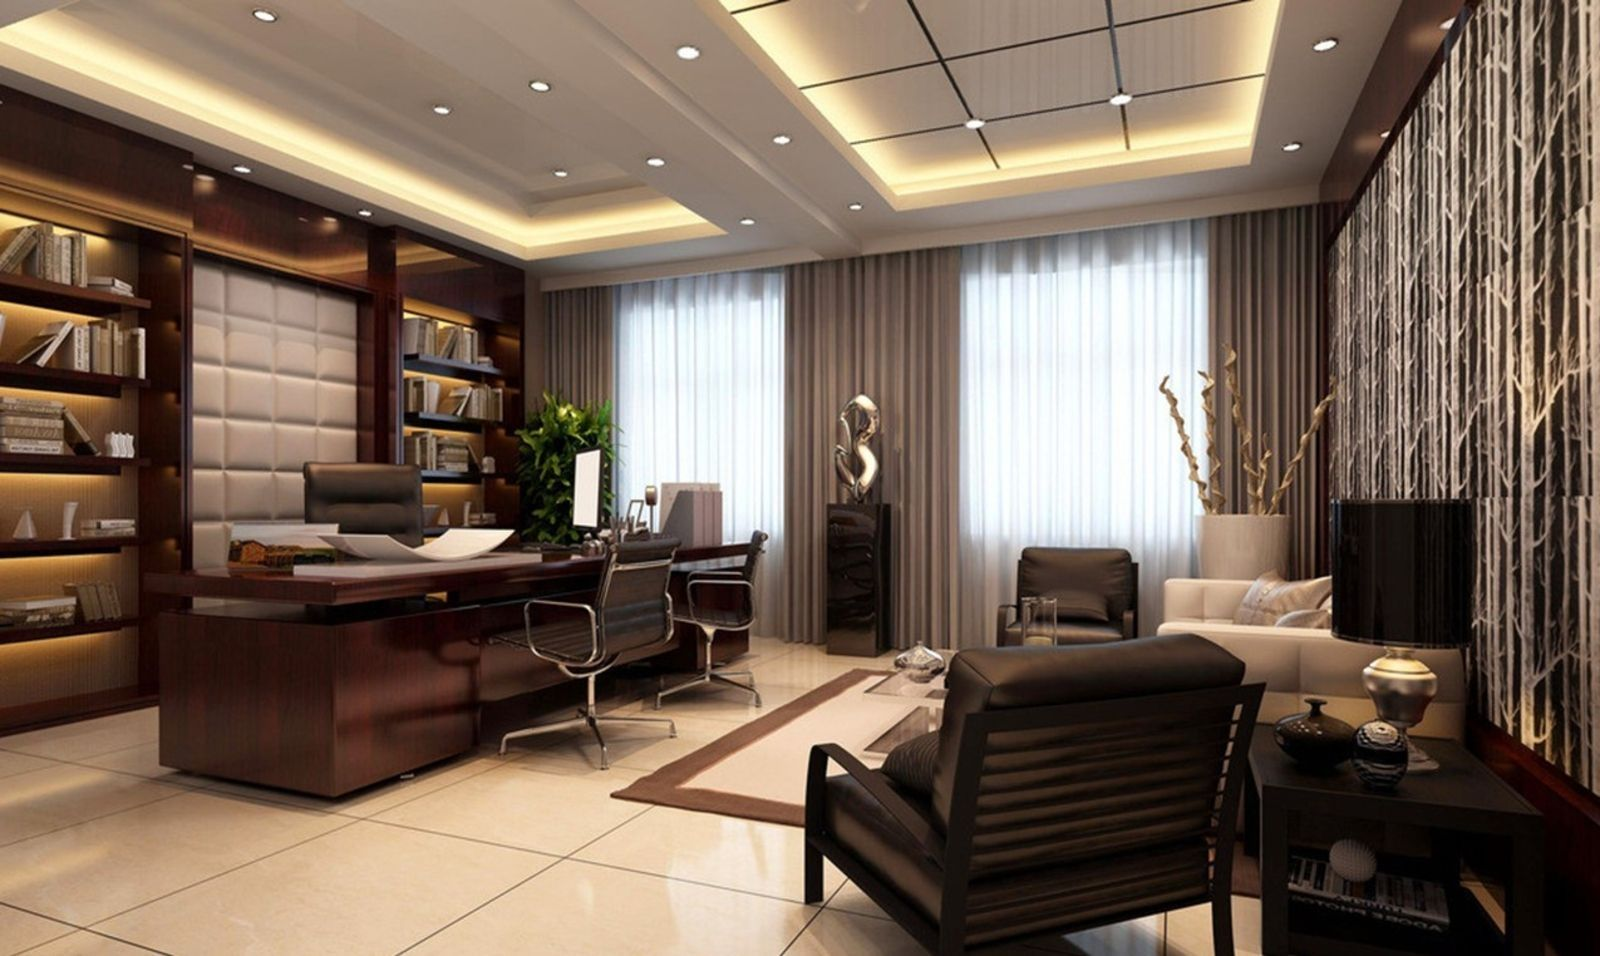 Find Inspiration About Modern Ceo Office Design Modern Ceo Office